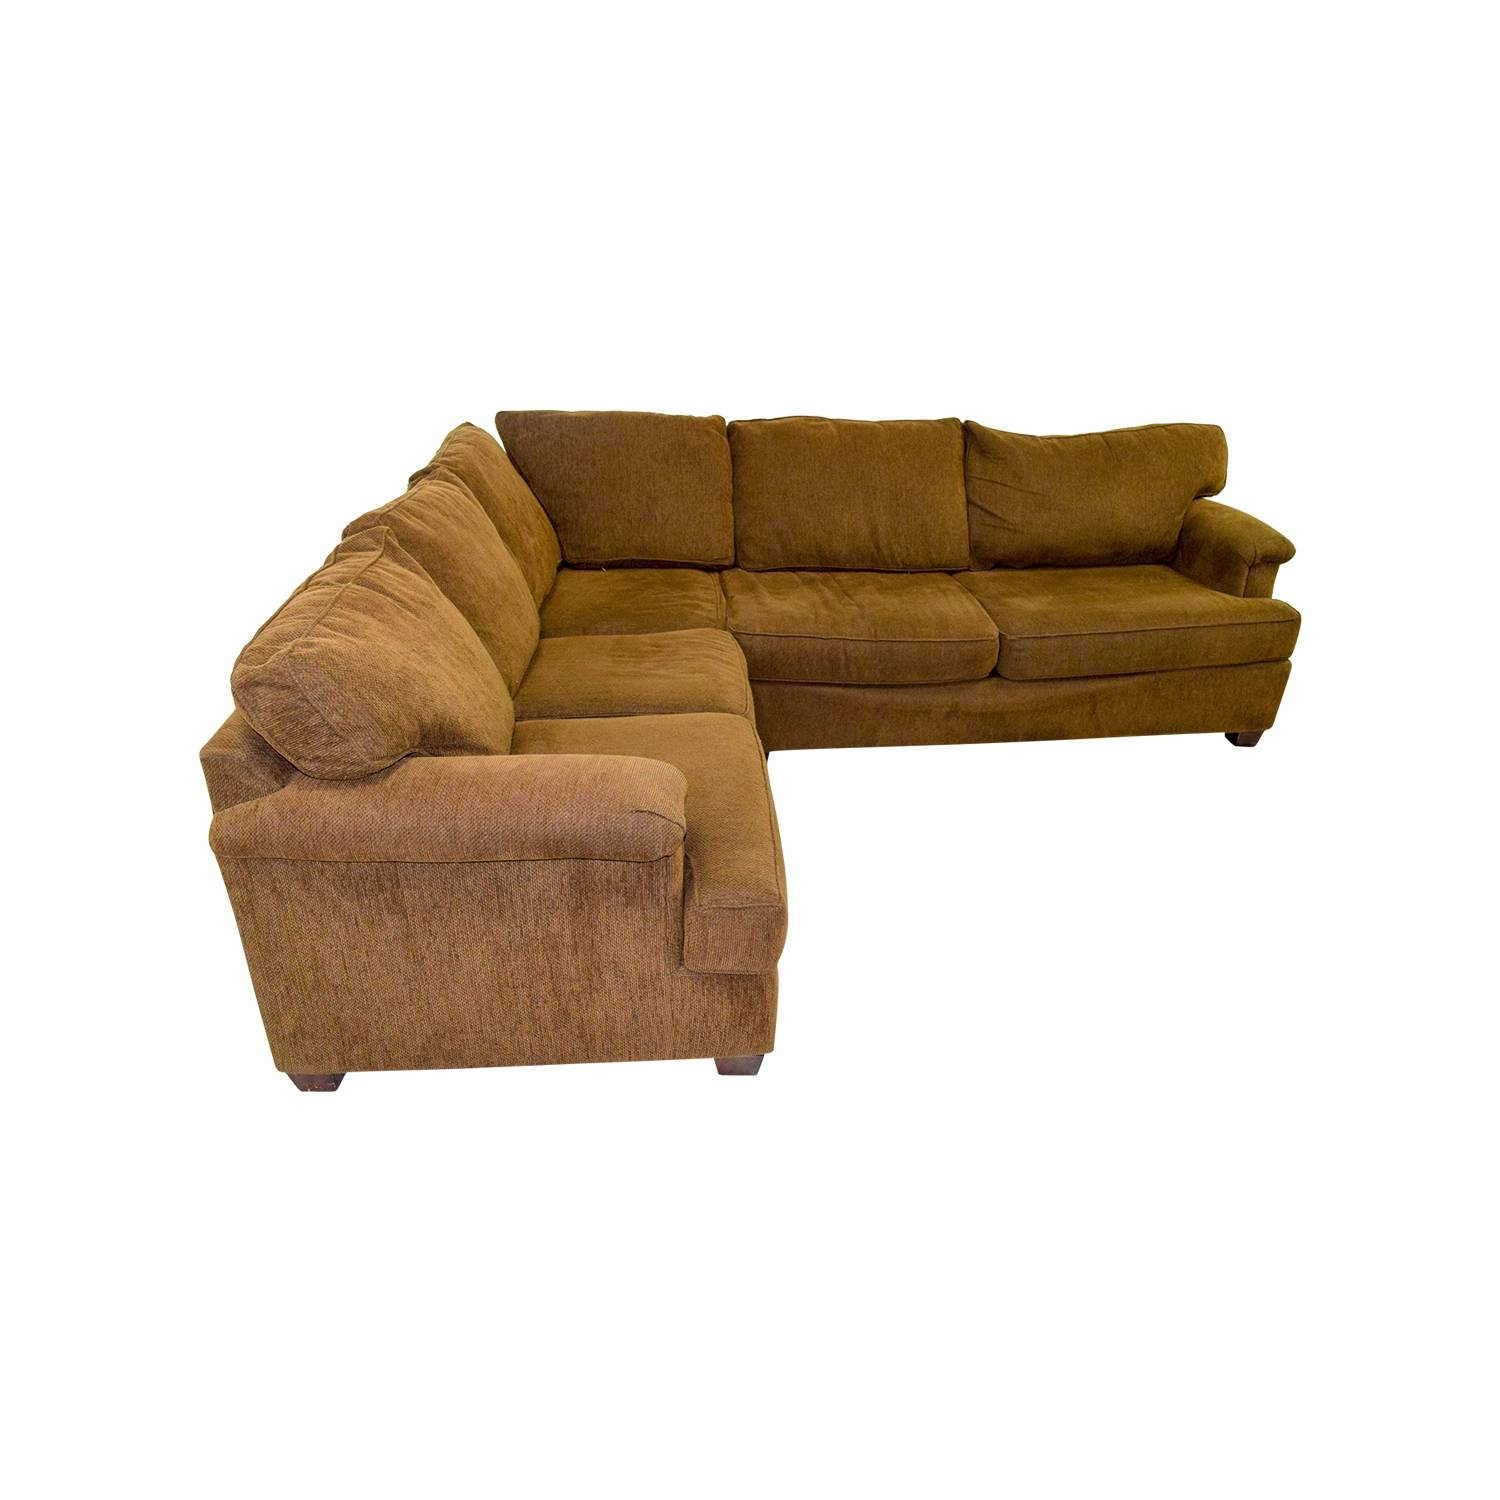 49% Off - Bloomingdale's Bloomingdale's Brown Corner Sectional / Sofas with regard to Bloomingdales Sofas (Image 1 of 15)